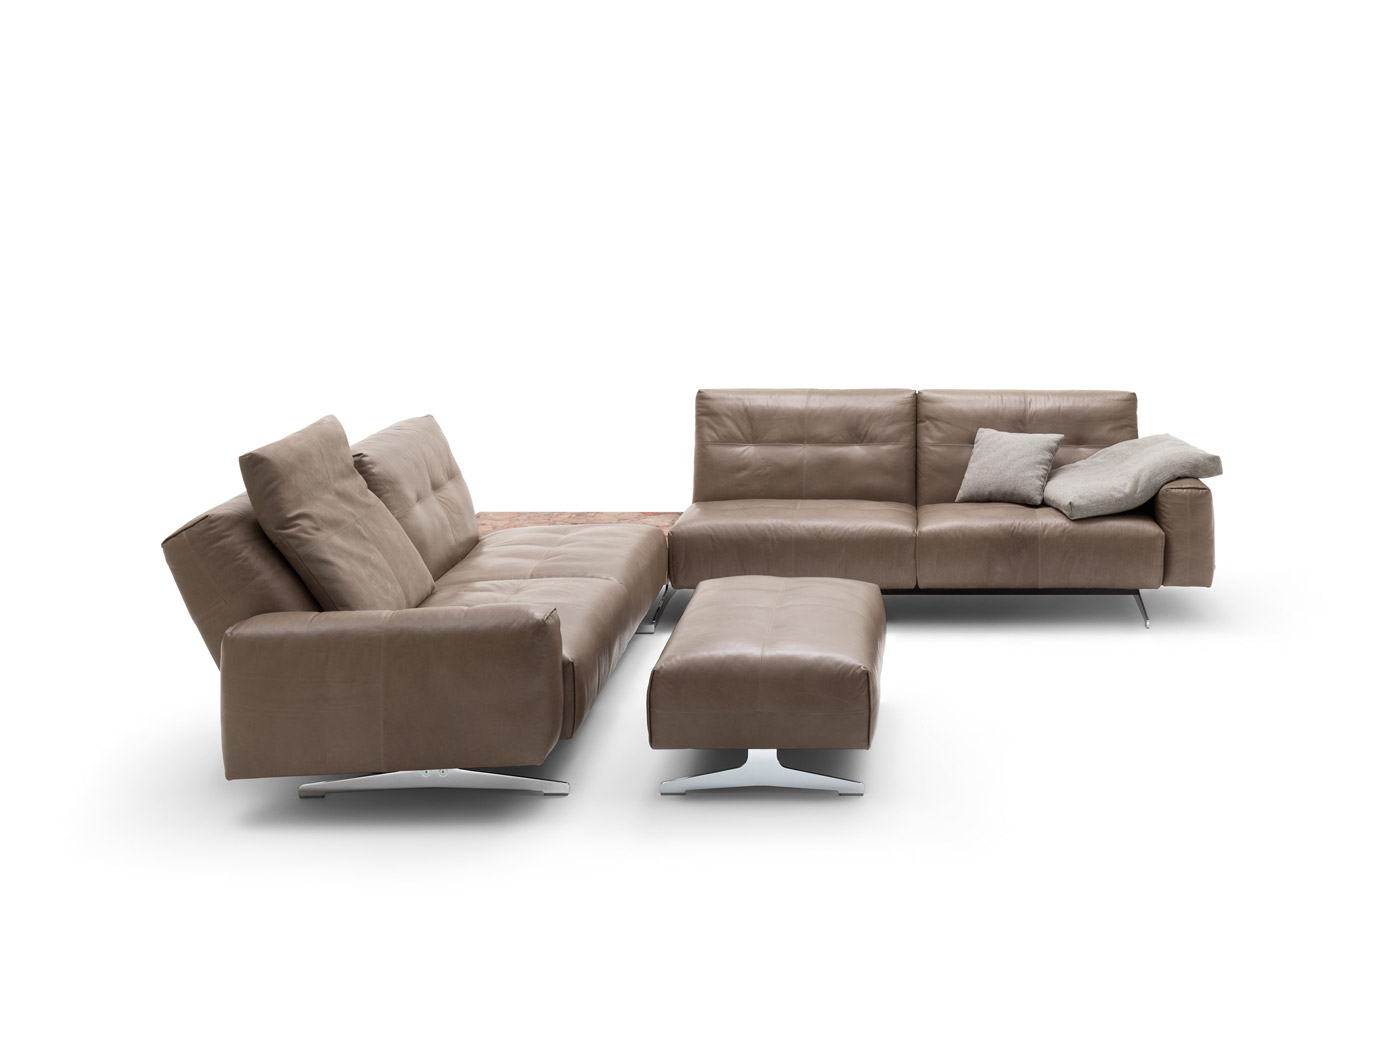 comfortable rolf benz sofa. The Almost Endless Variety Of Sizes And Elements Makes Sofa Suitable For Any Layout In World. Rolf Benz Comfortable